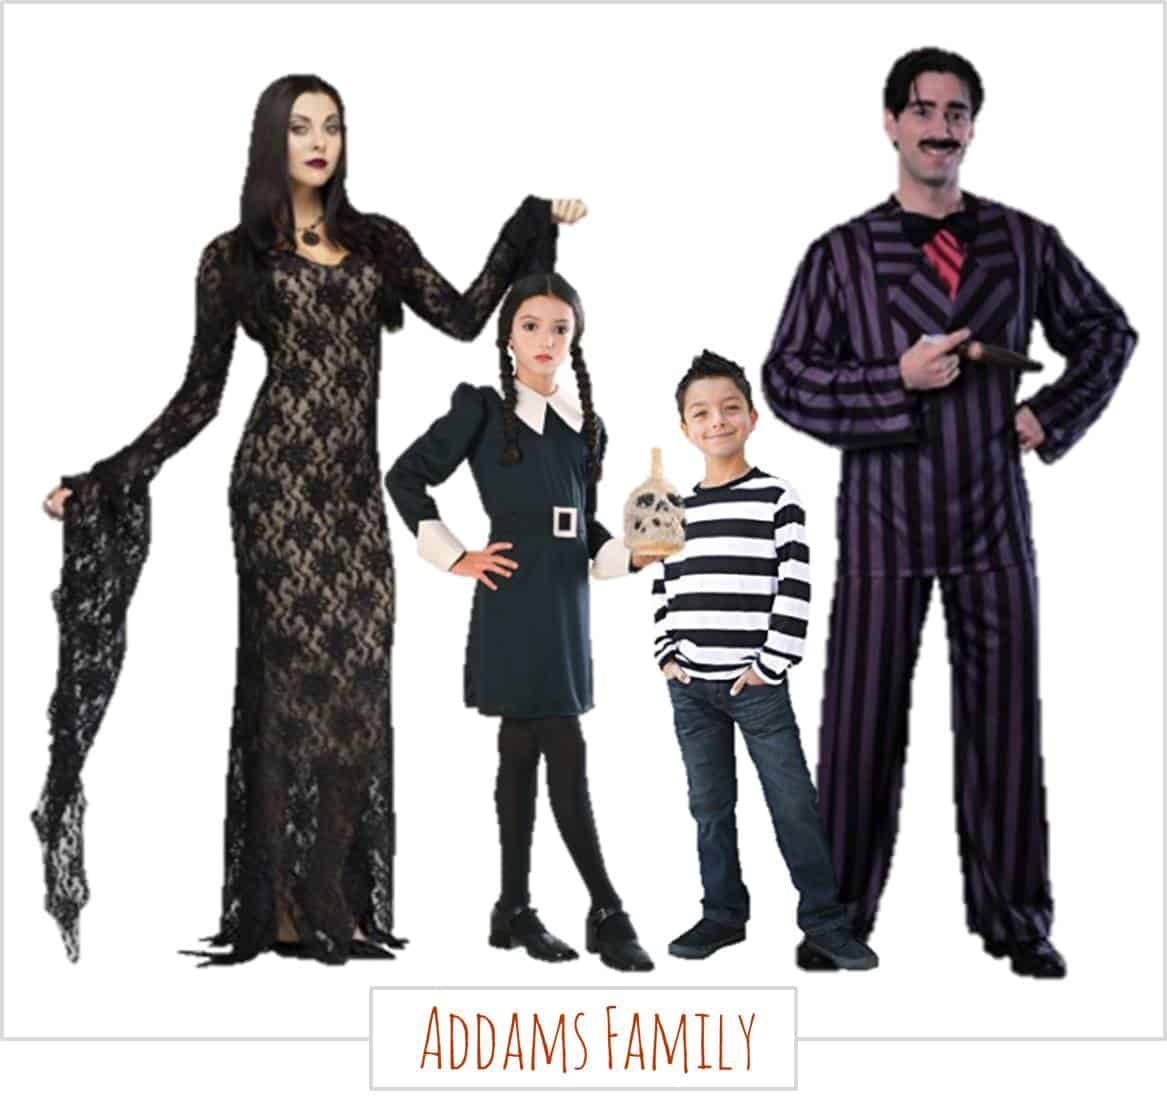 The Addams family,  Halloween Costumes for the Whole Family